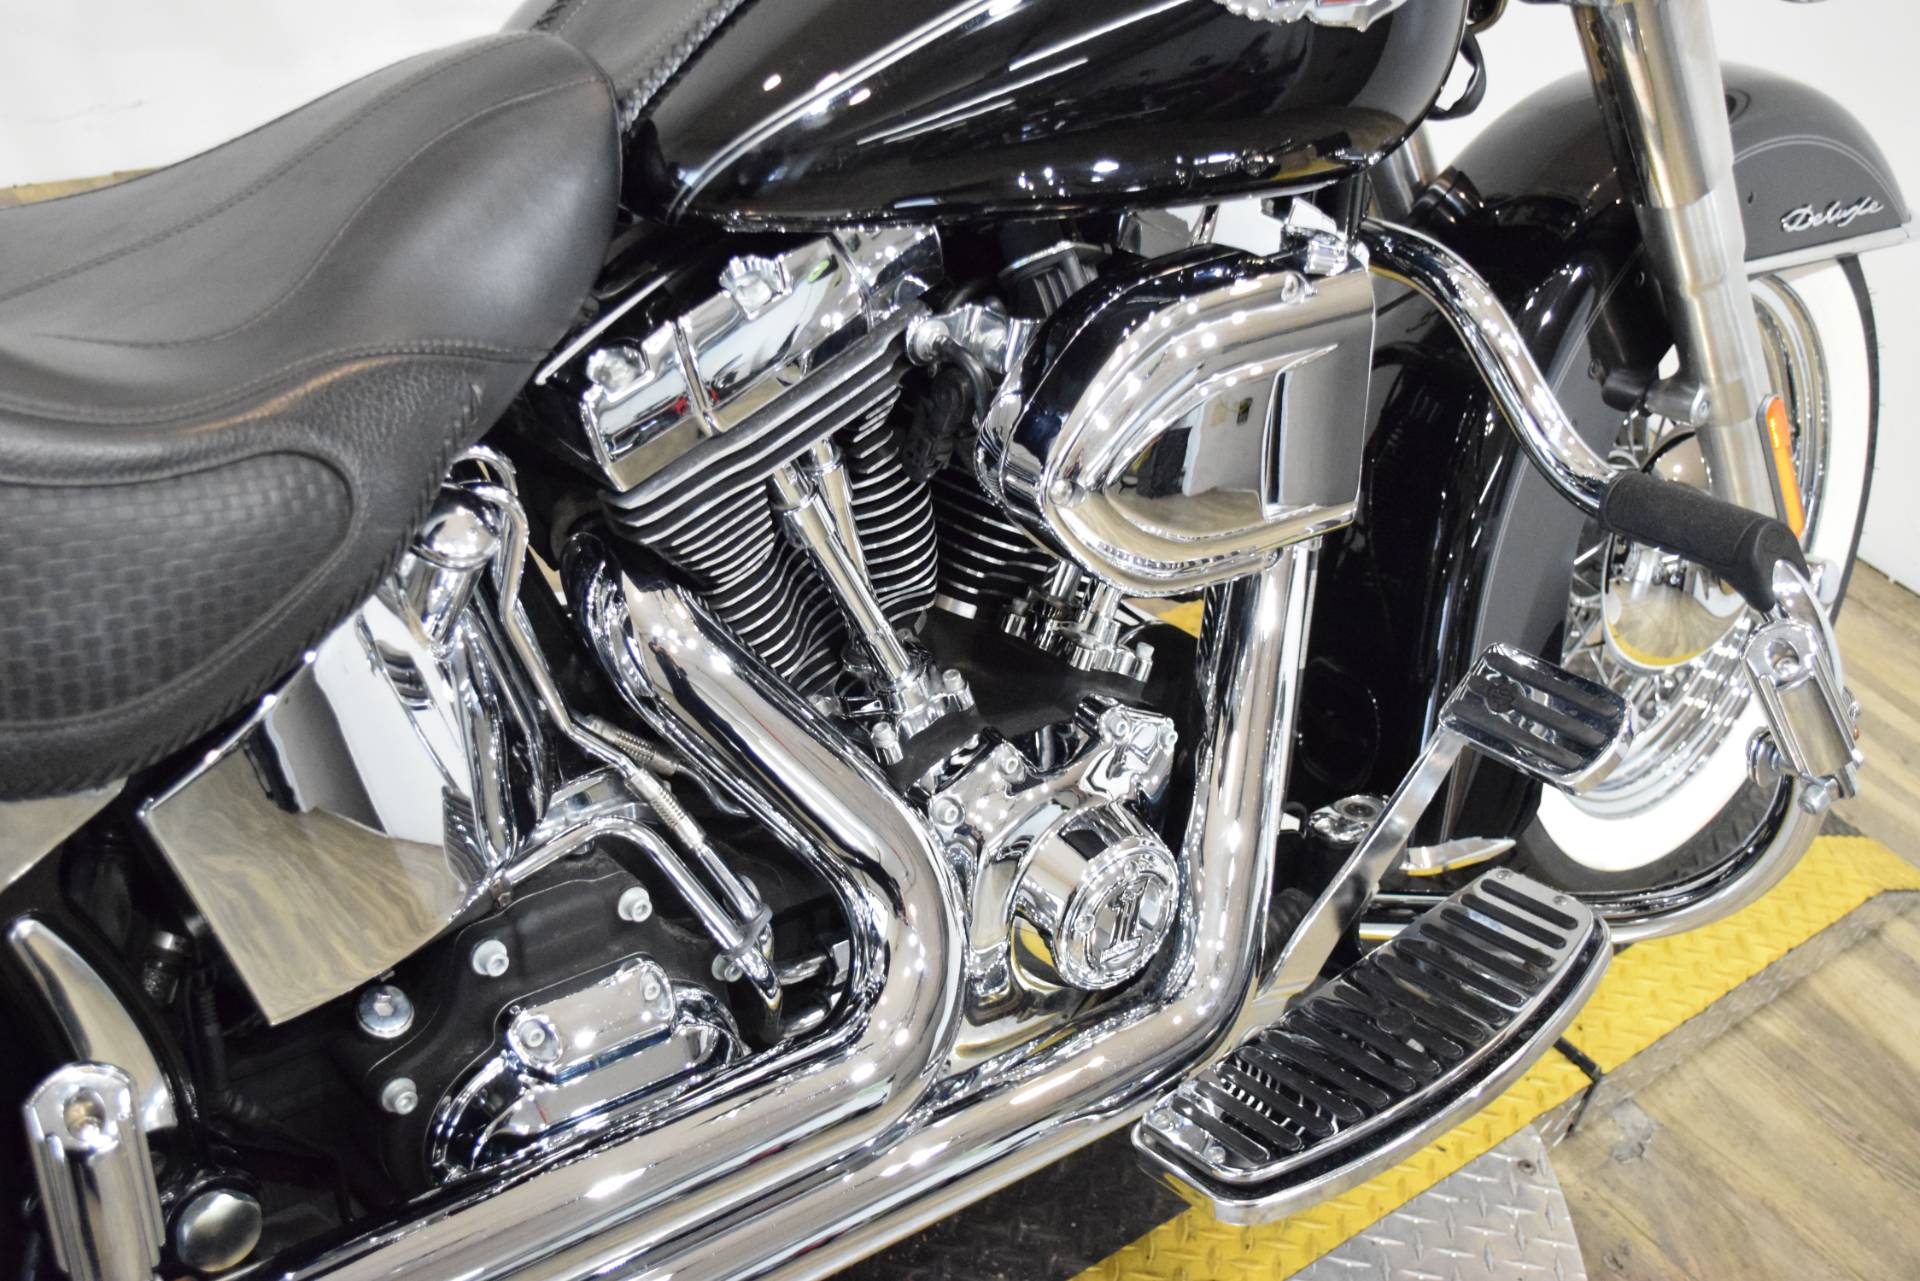 2007 Harley-Davidson Softail Deluxe in Wauconda, Illinois - Photo 7